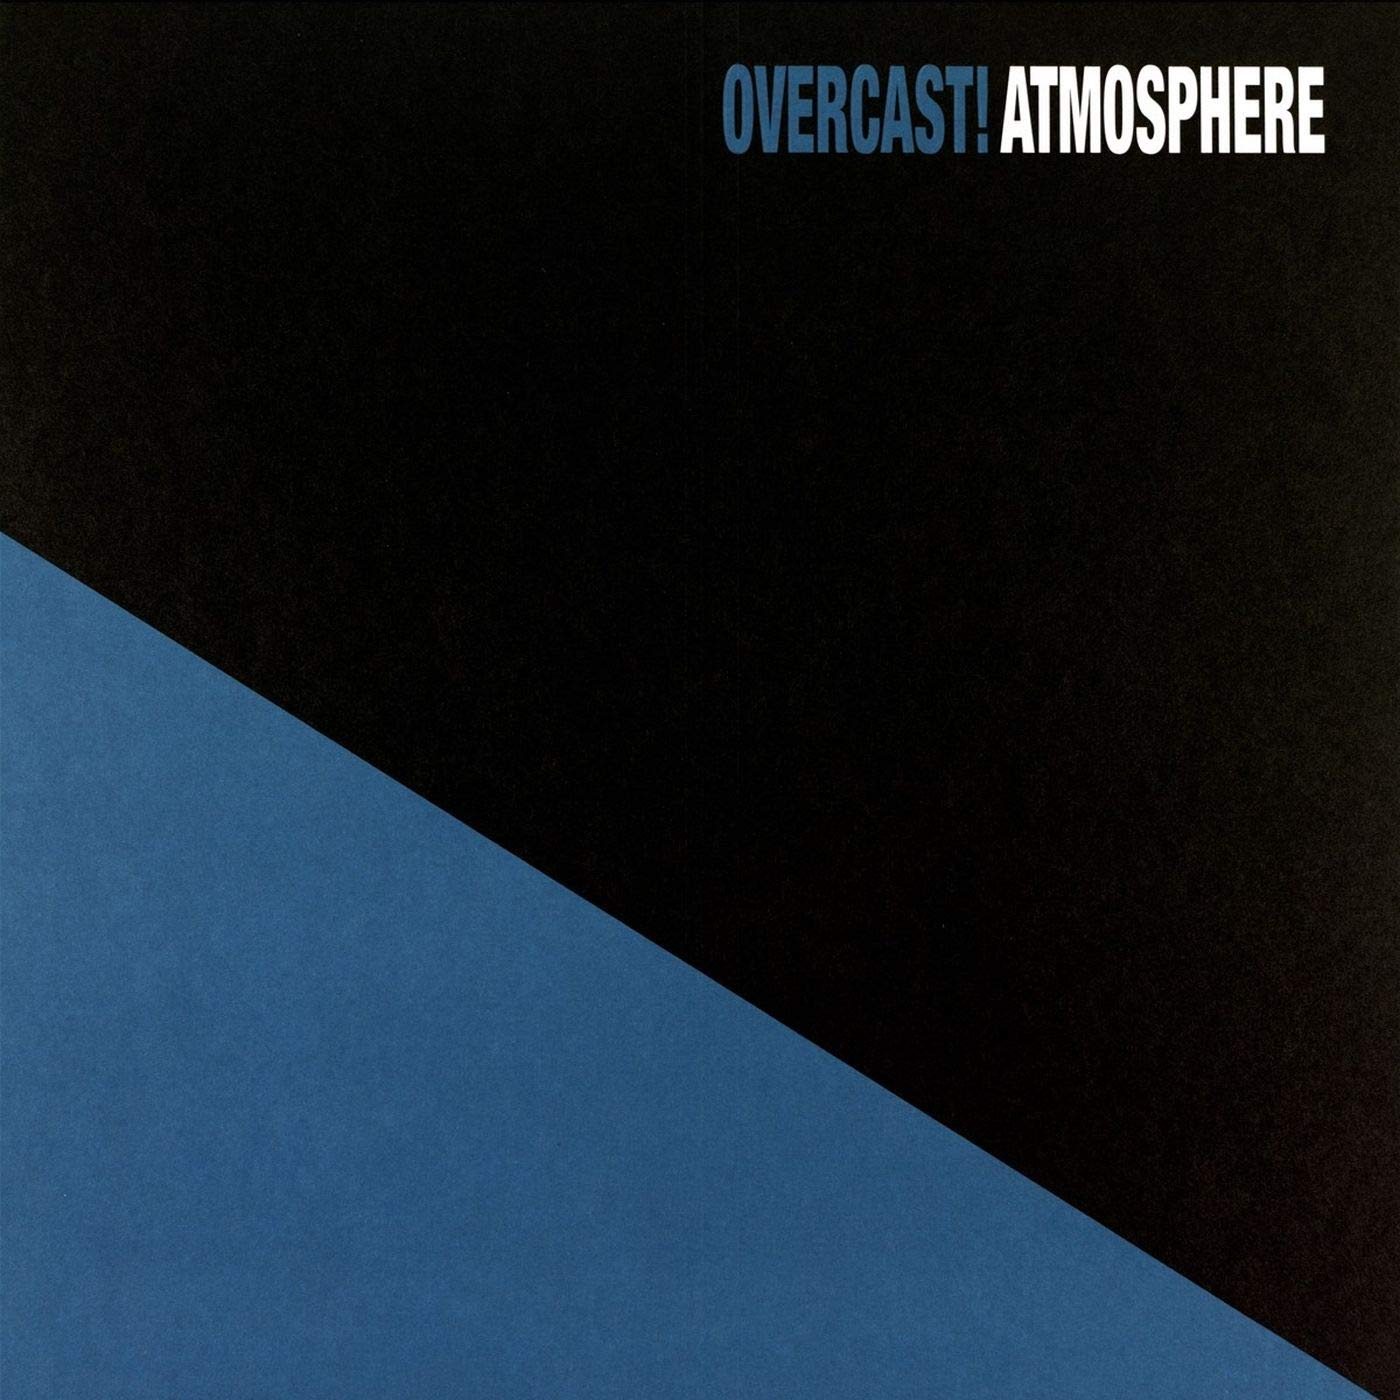 Atmosphere - Overcast! [3LP] (20th Anniversary, White Colored Vinyl, , 3 previously unreleased bonus tracks) - Urban Vinyl | Records, Headphones, and more.